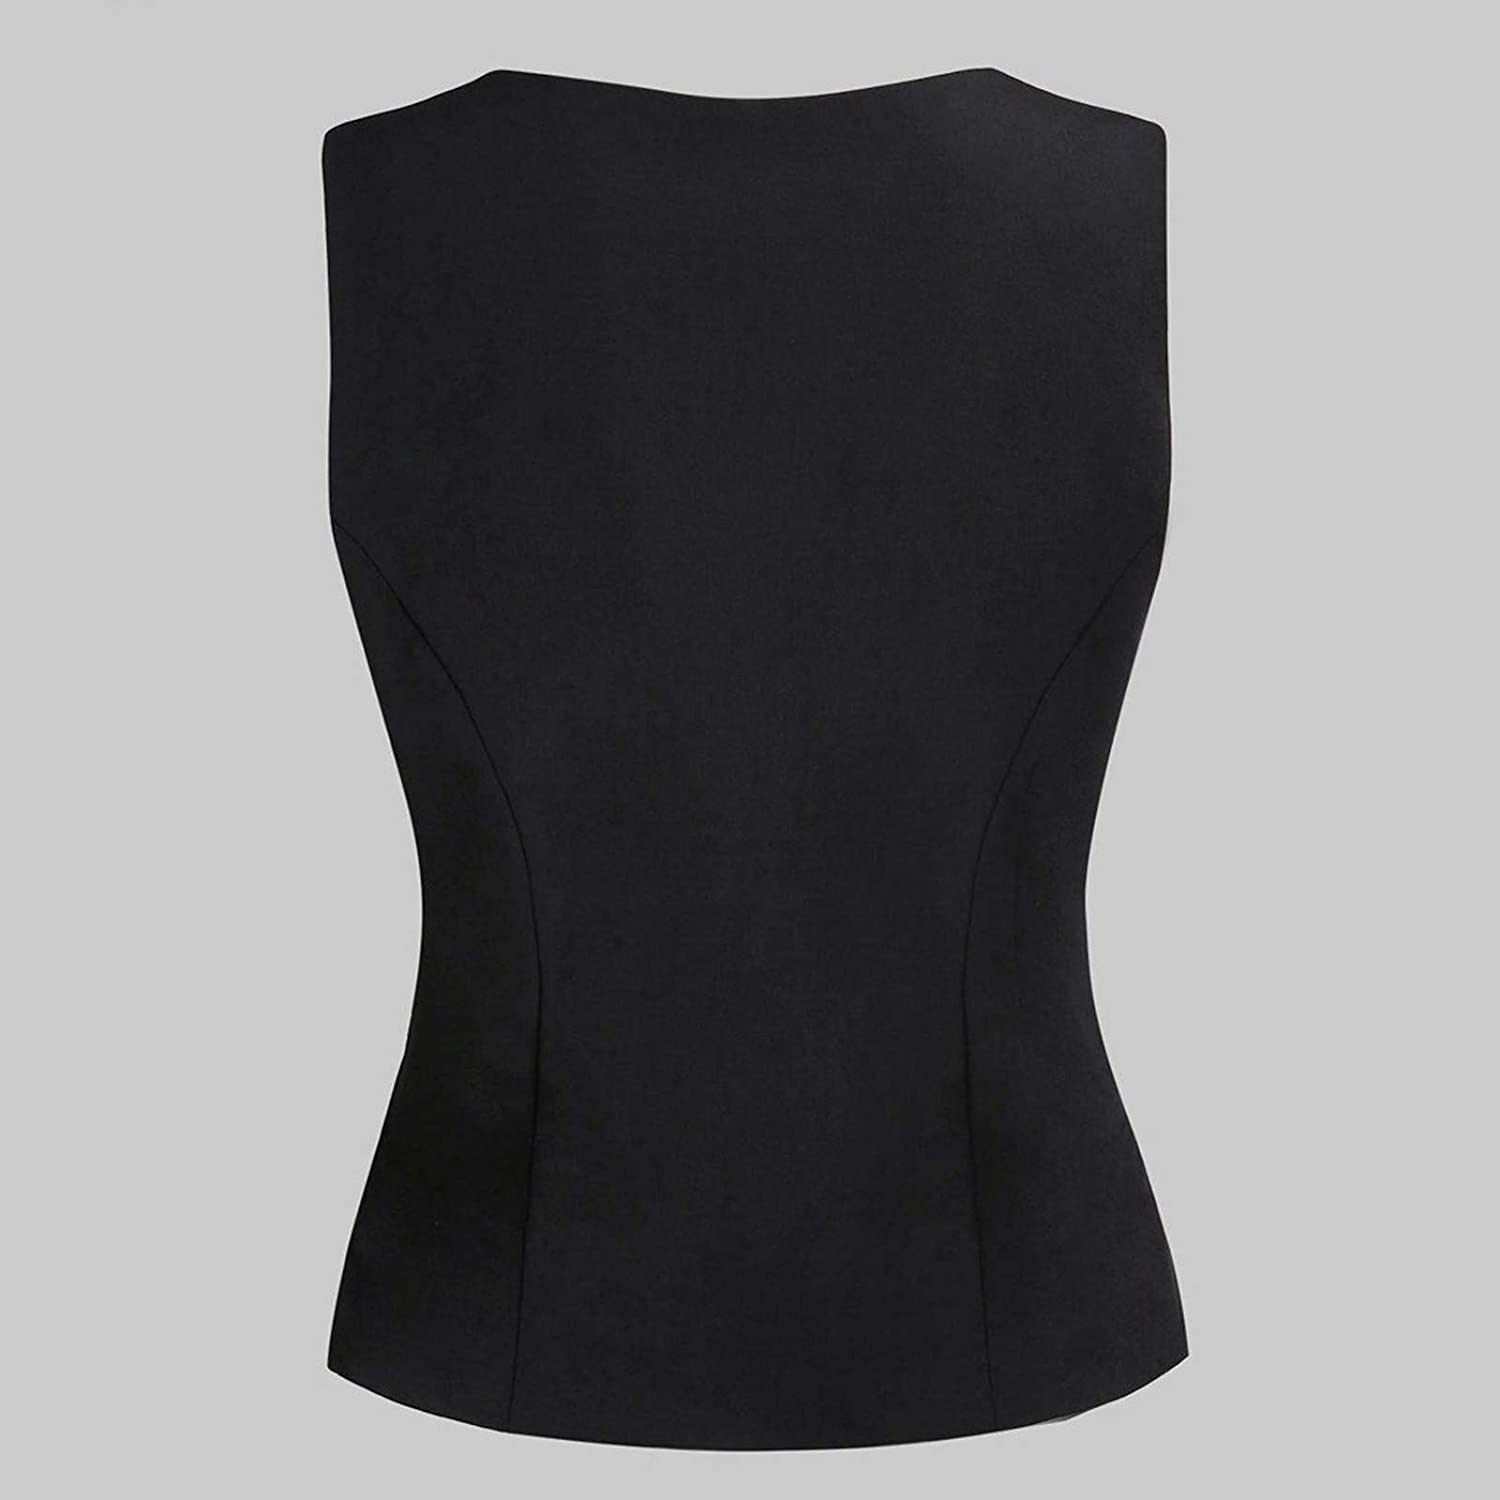 Tank Tops for Women Vintage Lace Up Sexy Bandage Waistcoat Girls Fashion Casual Plus Size Tee Shirt Corset Tops